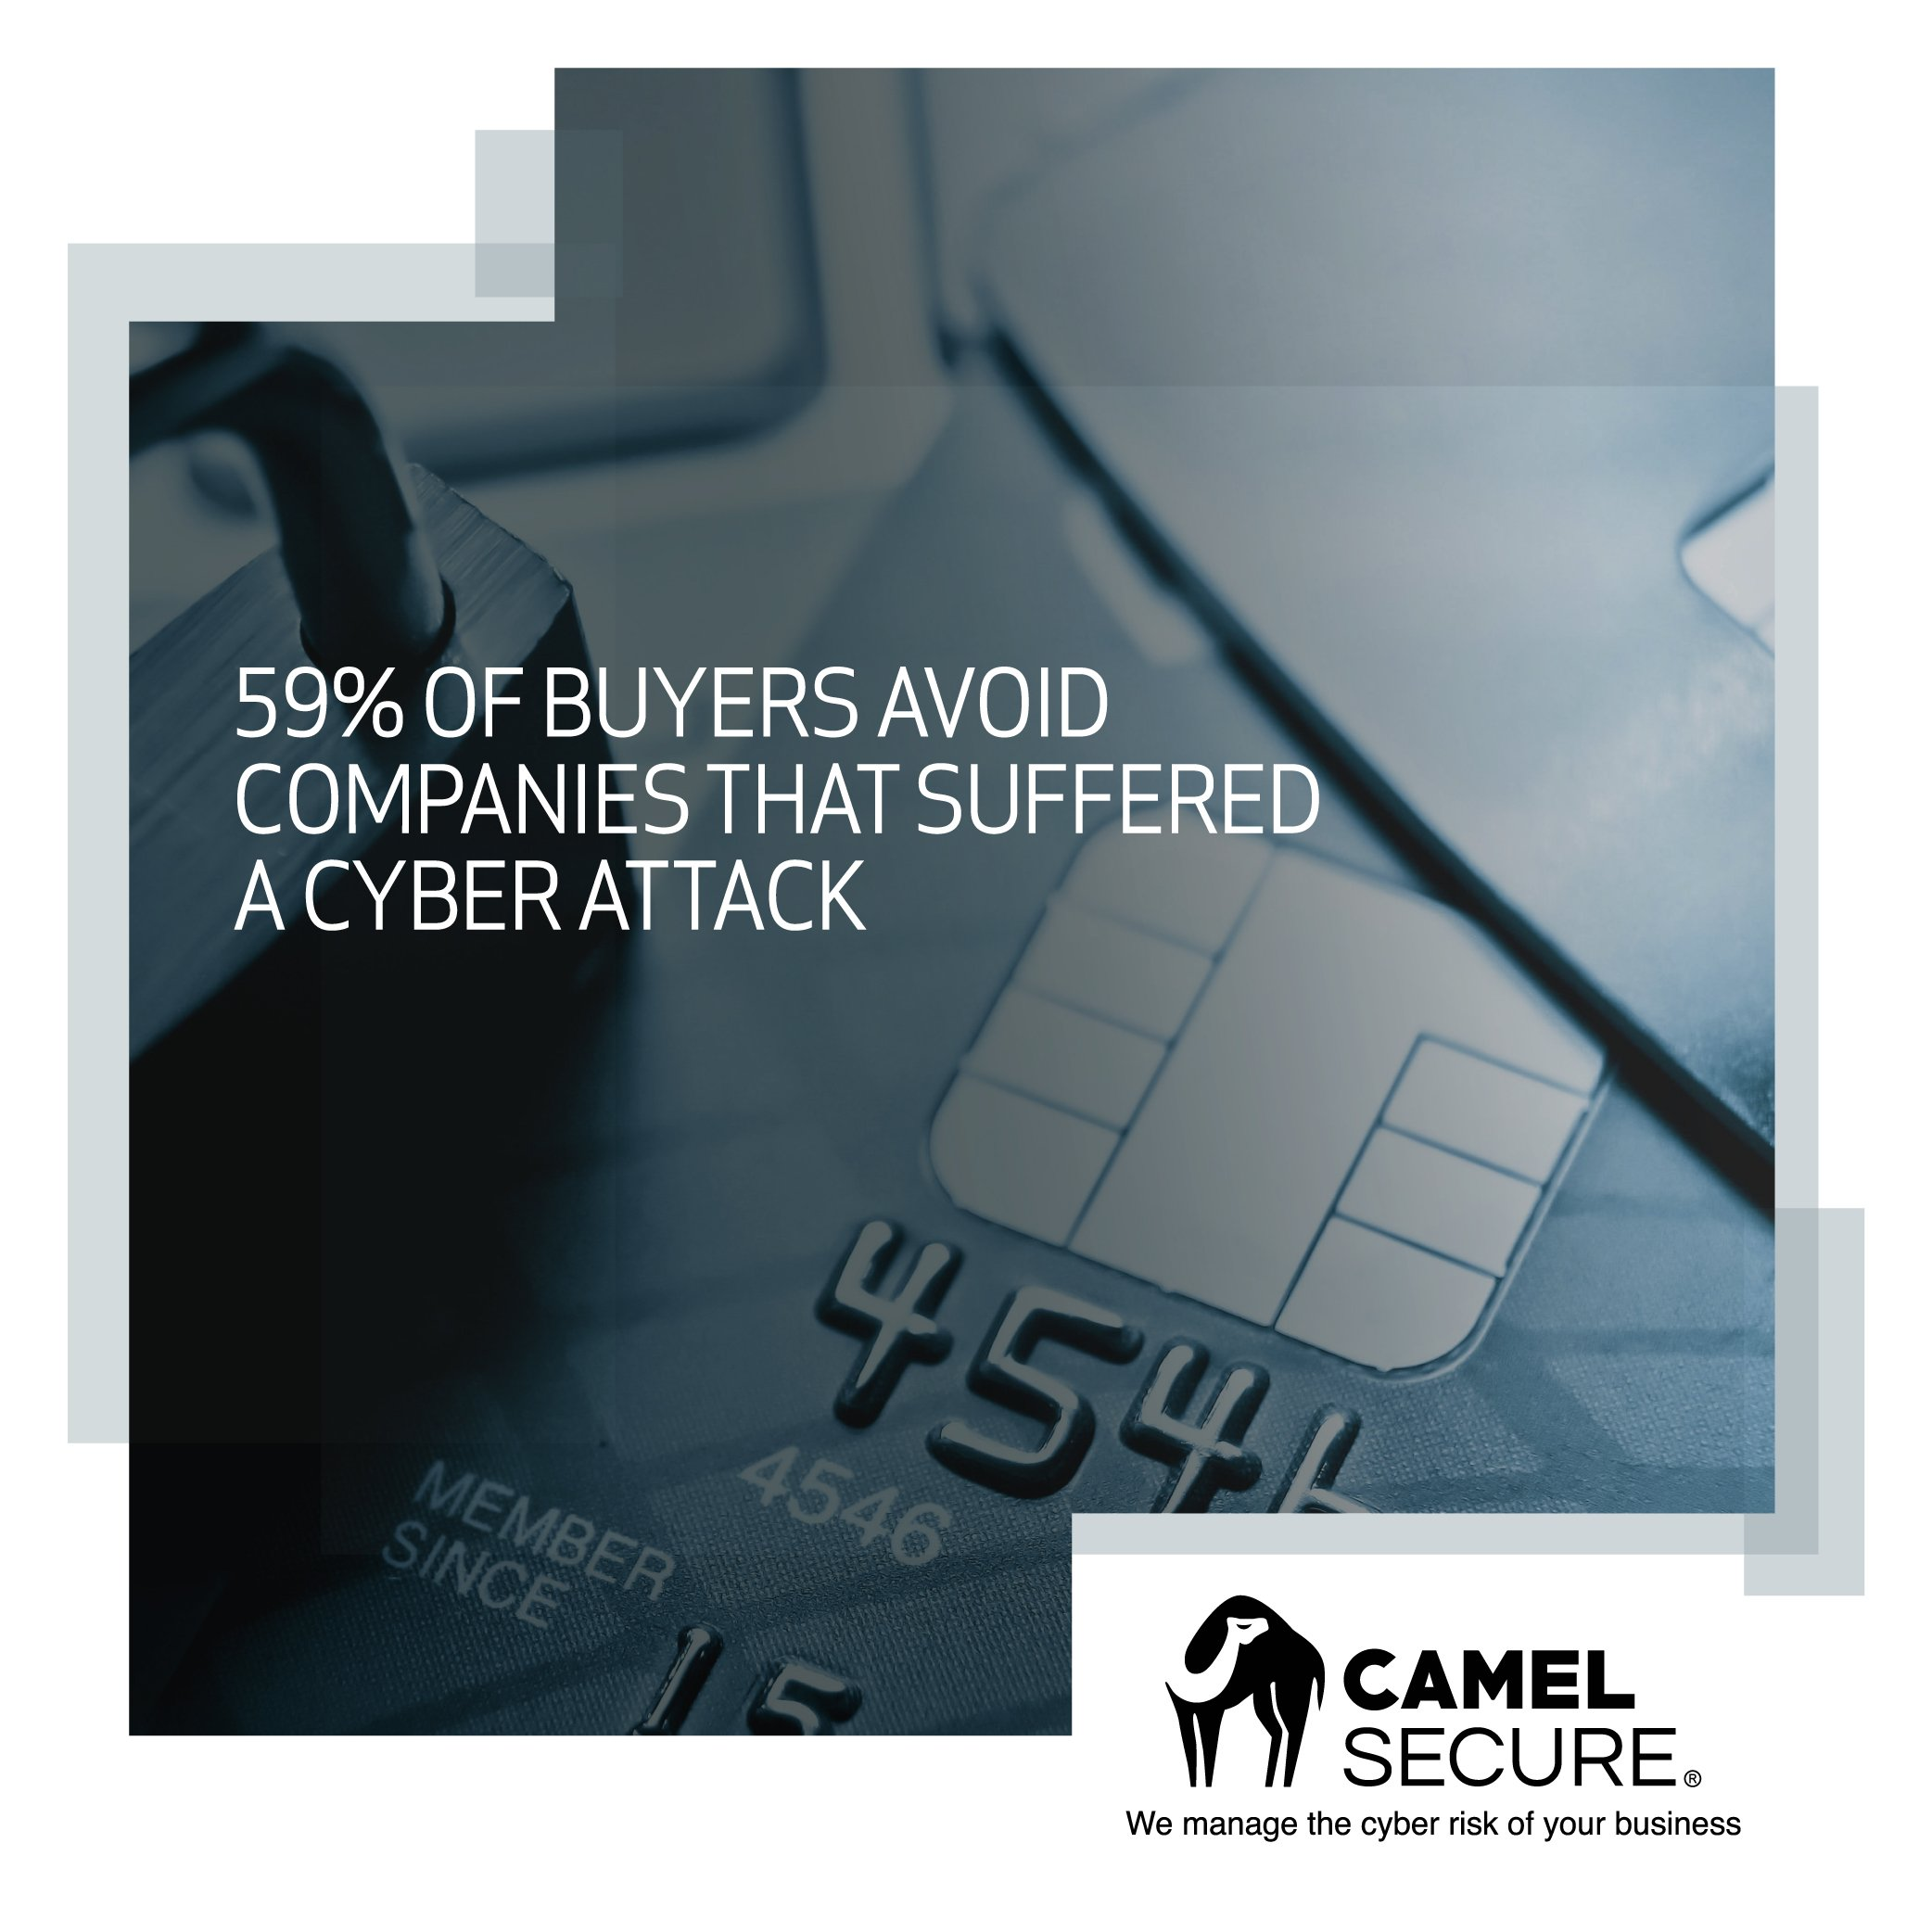 59% of buyers avoid companies that suffered a cyber attack